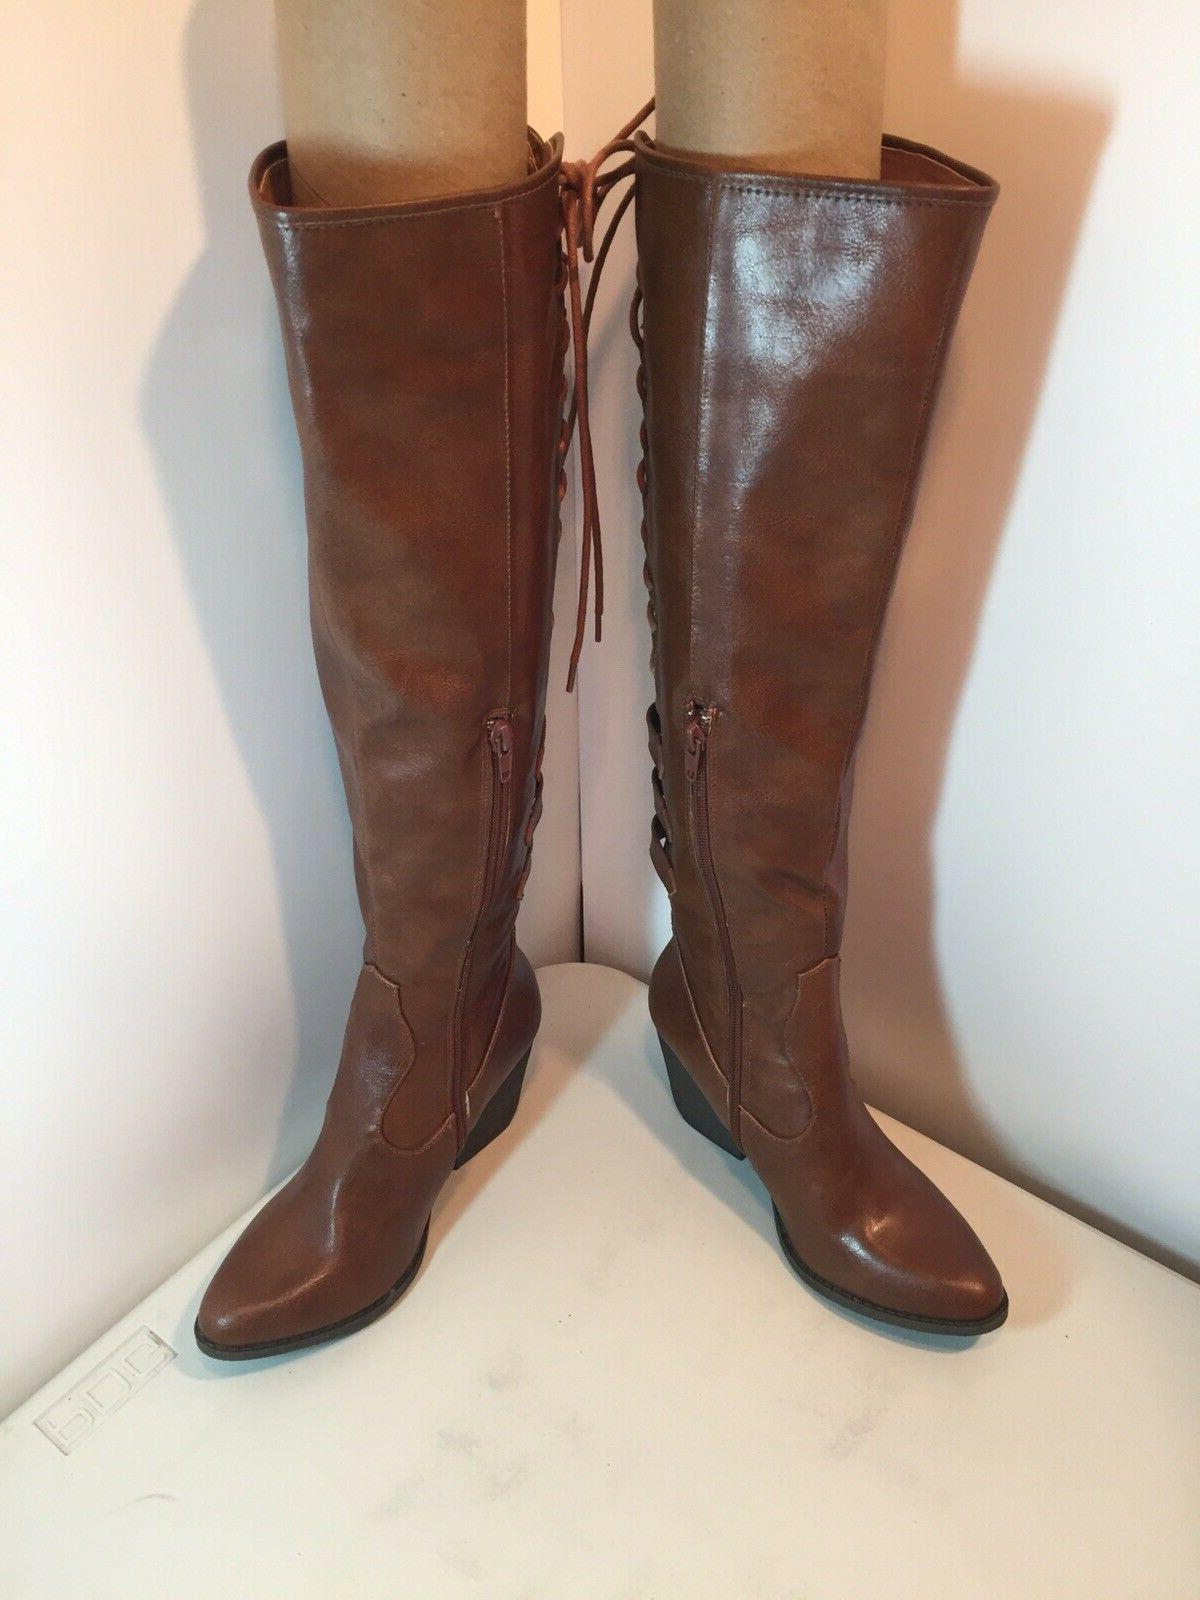 COCONUTS MATISSE Lace-Up Tigress Boots Cognac Size